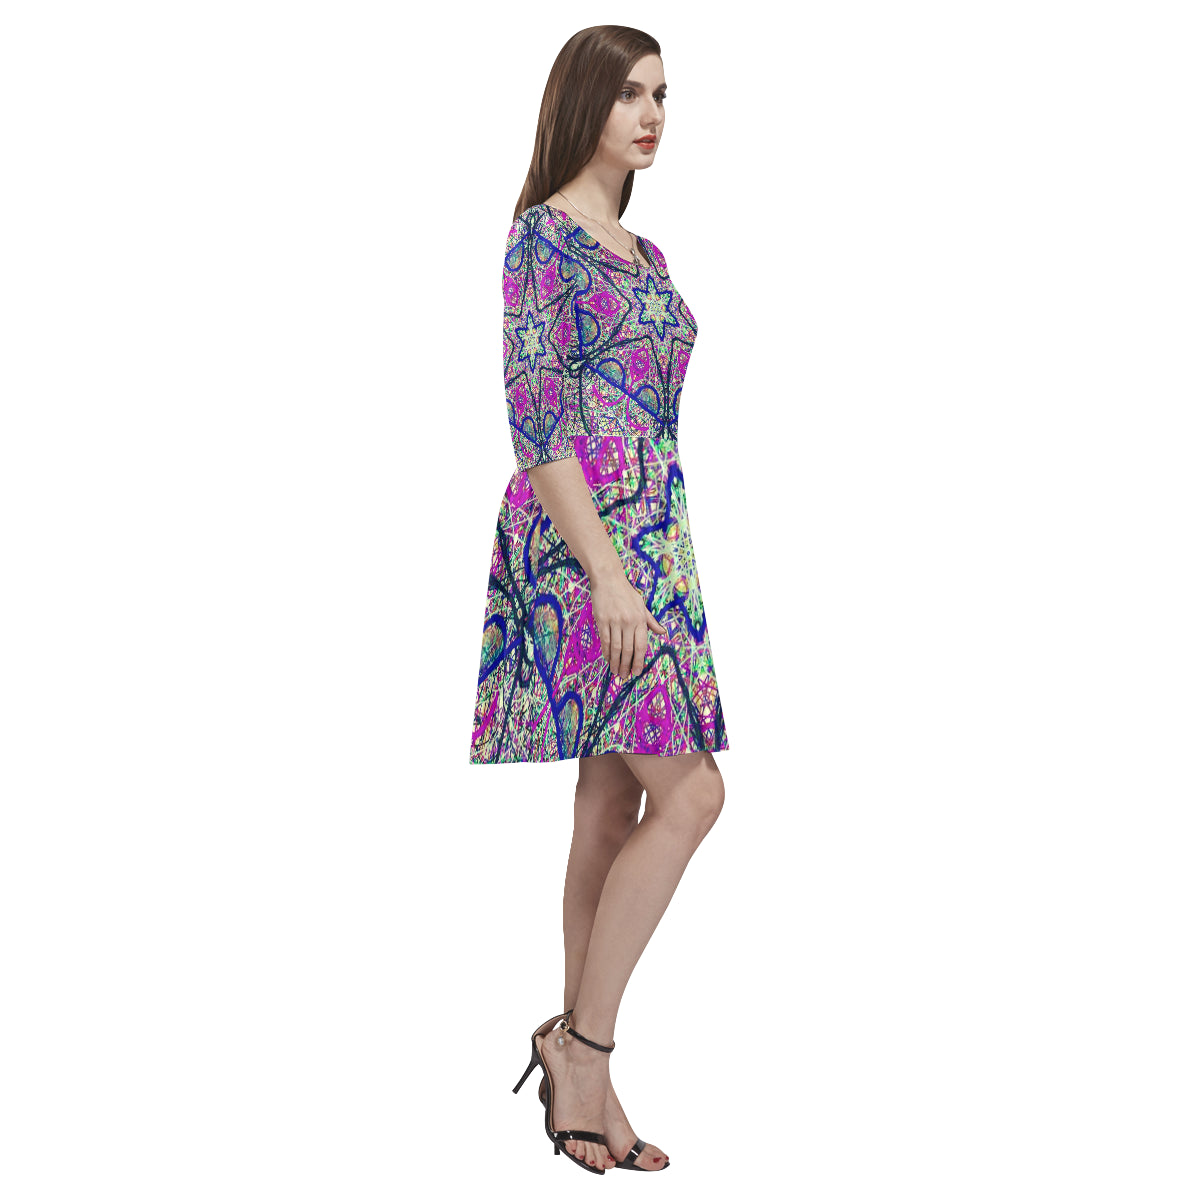 Thleudron Cipriana Tethys Half-Sleeve Skater Dress(Model D20) - Thleudron